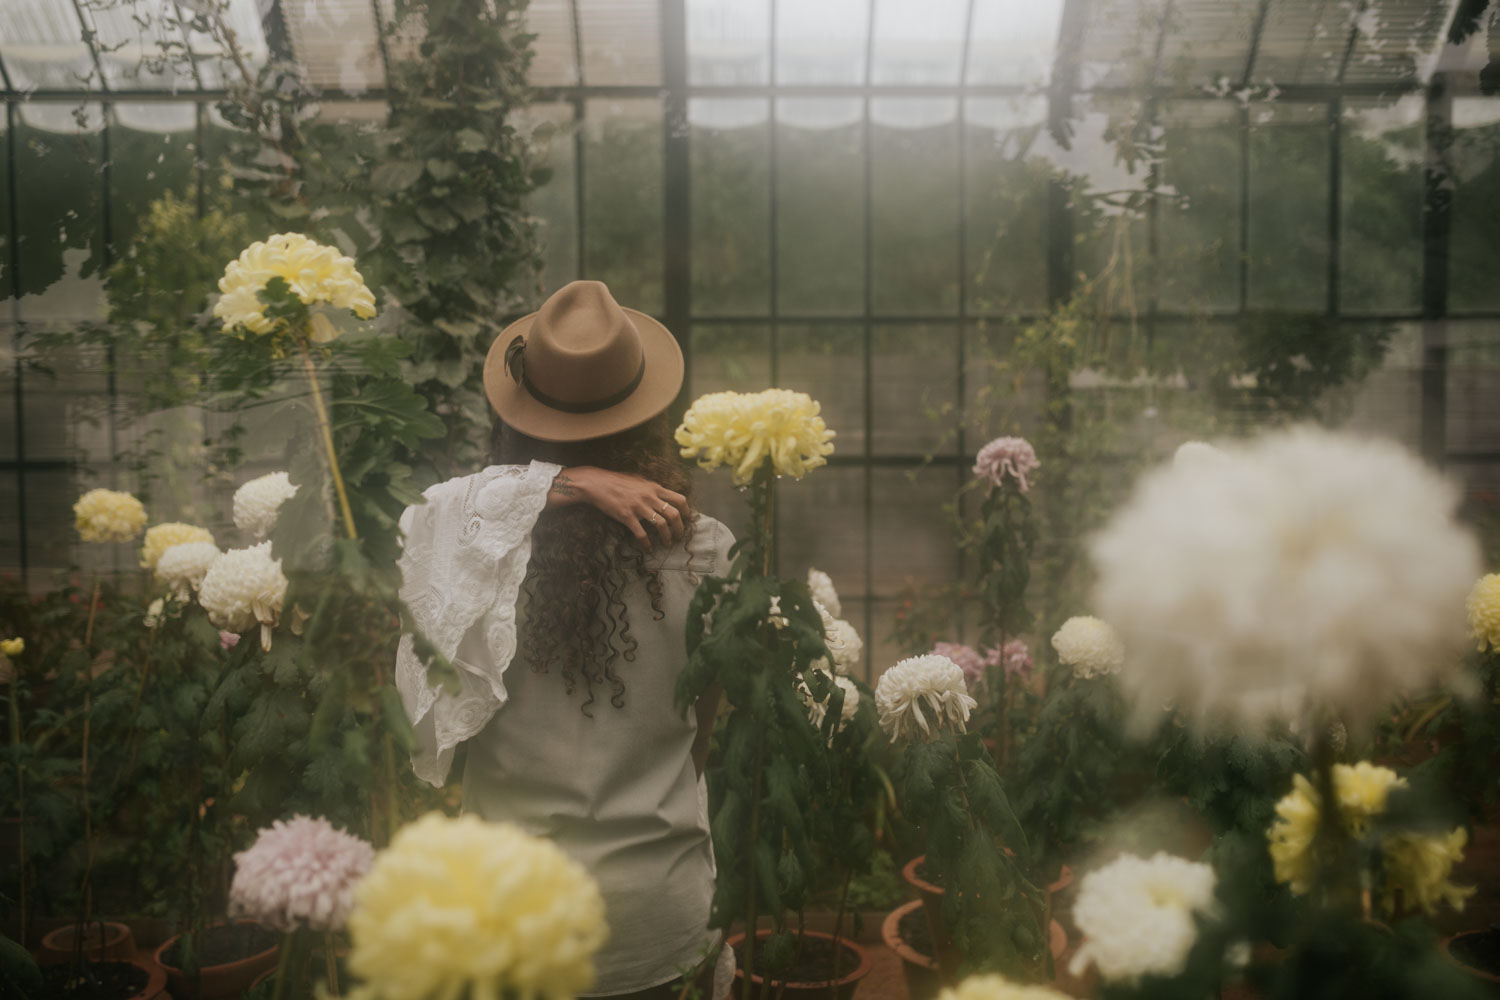 Greenhouse Engagement Photo Shoot With Boho Long Haired Couple In Flowers